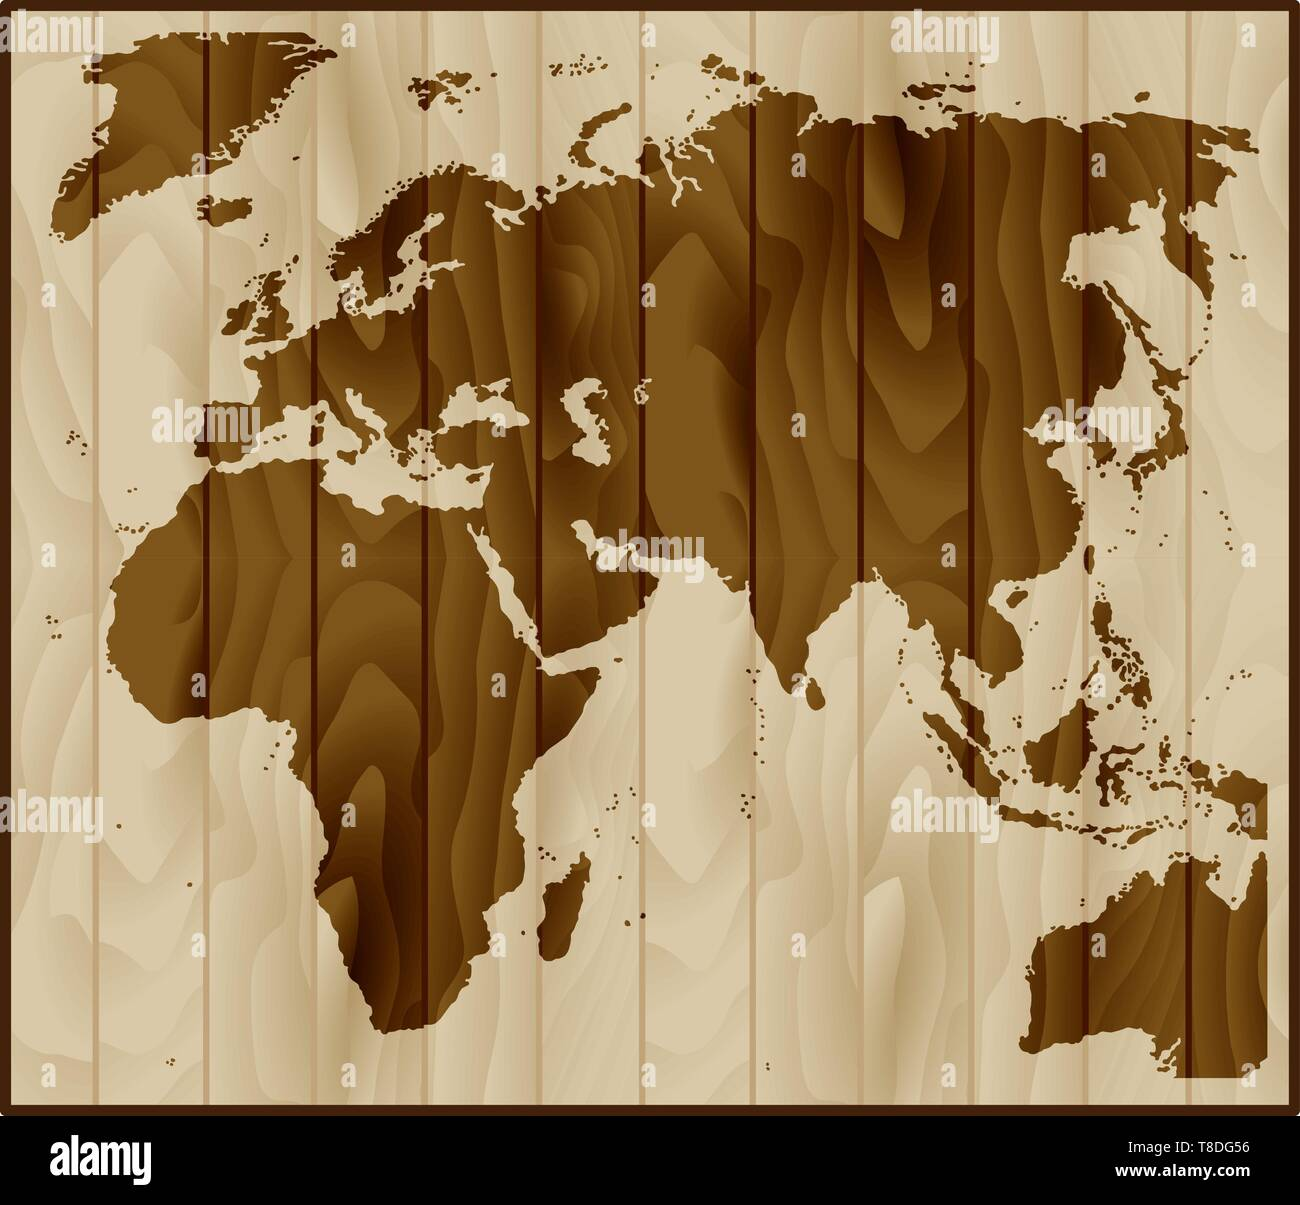 Europe, Asia and Africa map on wood background - Stock Vector